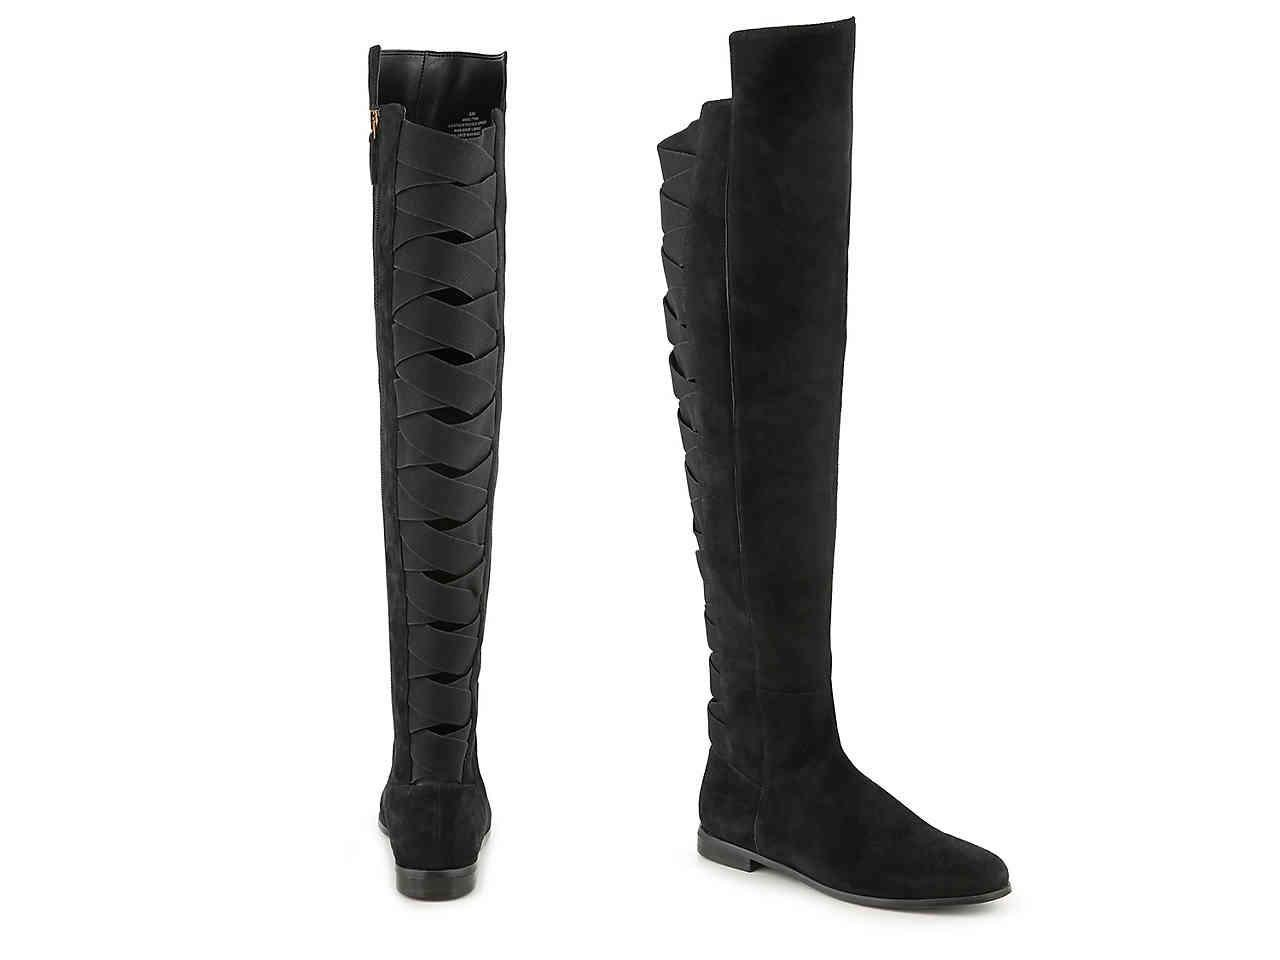 3c9c77129f8 Lyst - Nine West Eltynn Over The Knee Boot in Black